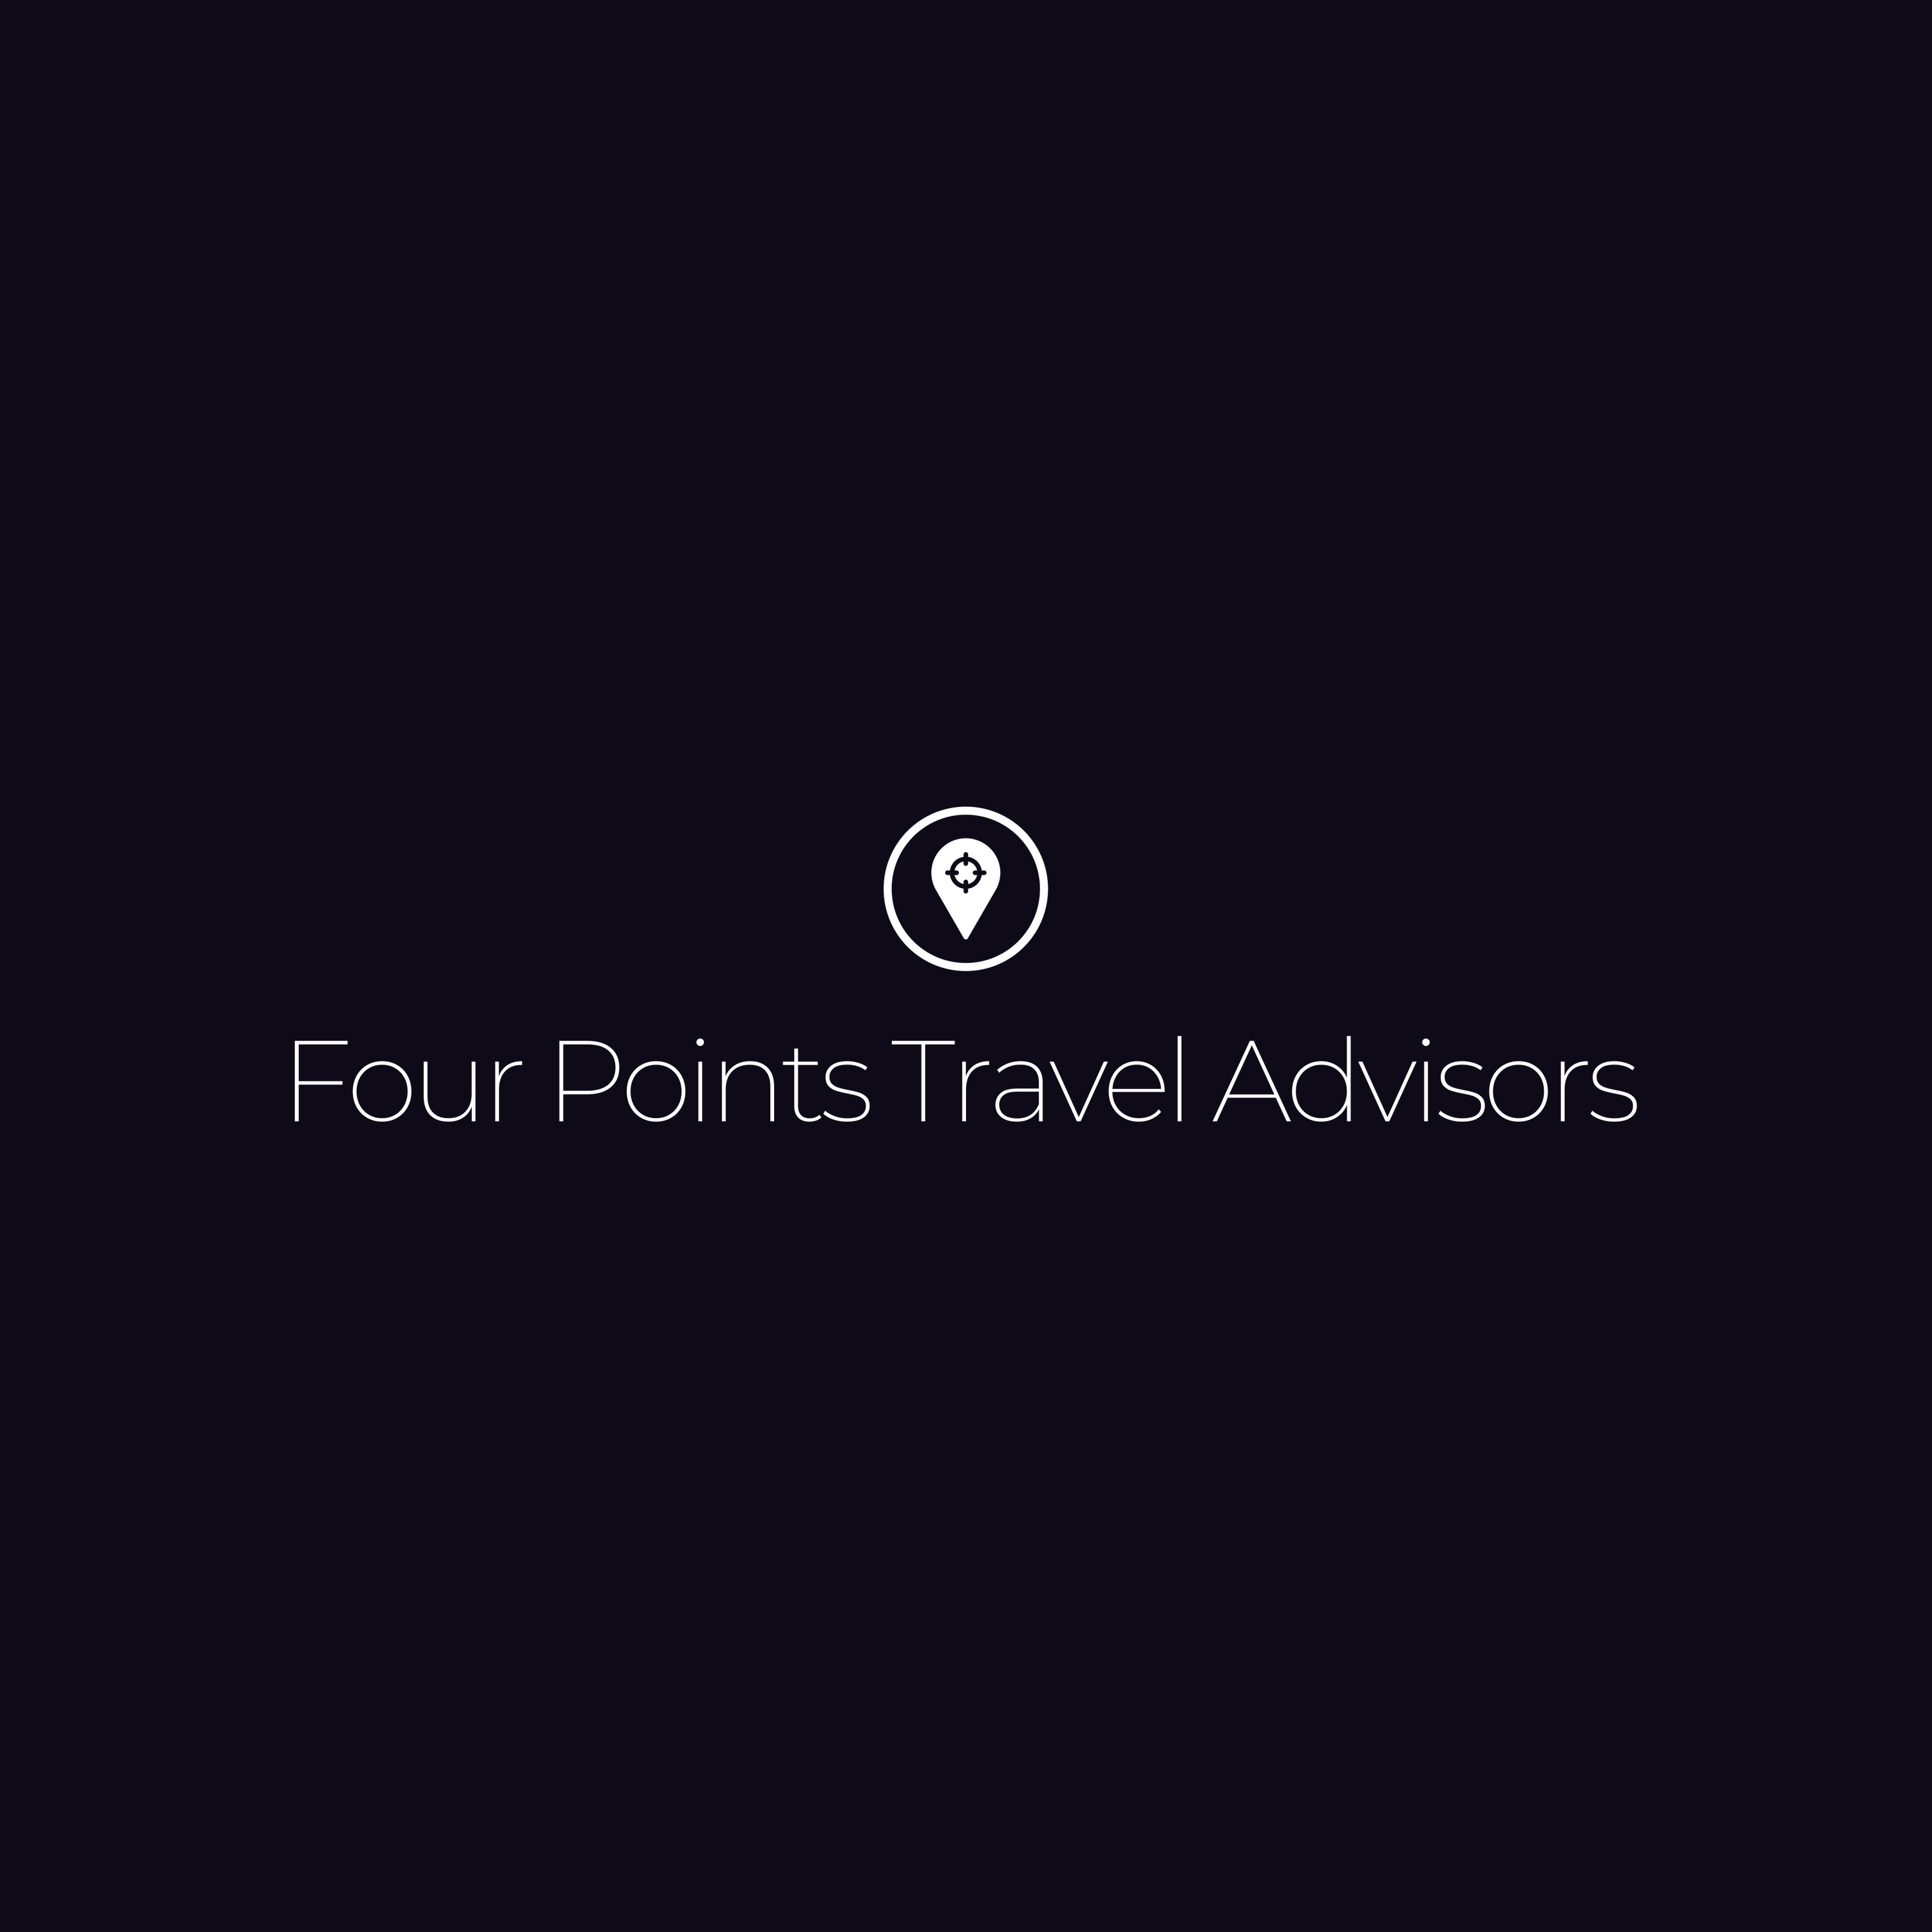 Four Points Travel Advisors